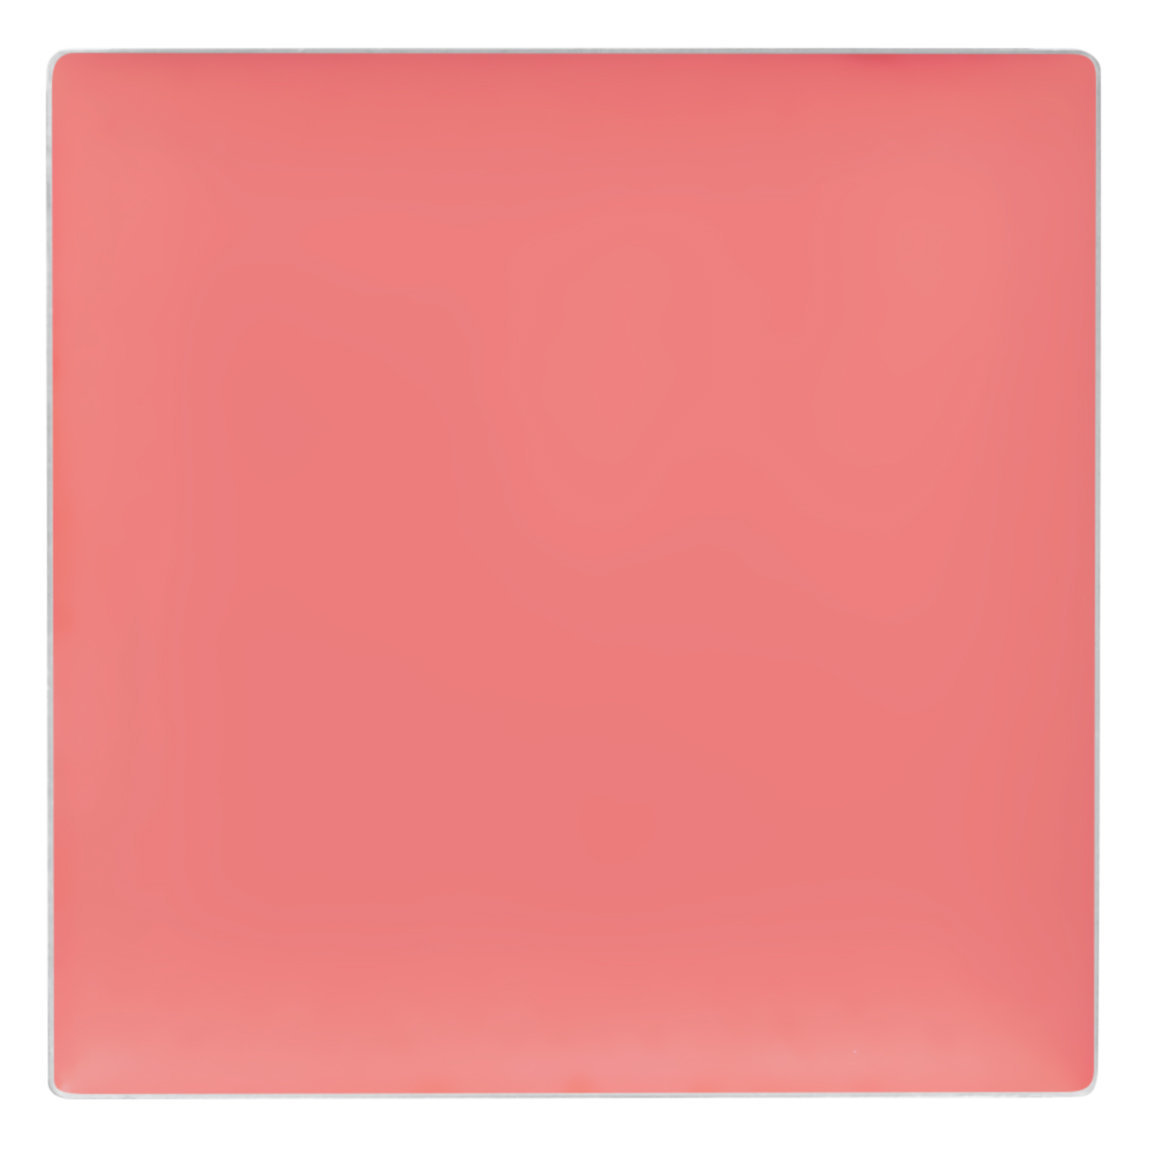 Kjaer Weis Cream Blush Refill Blossoming alternative view 1 - product swatch.